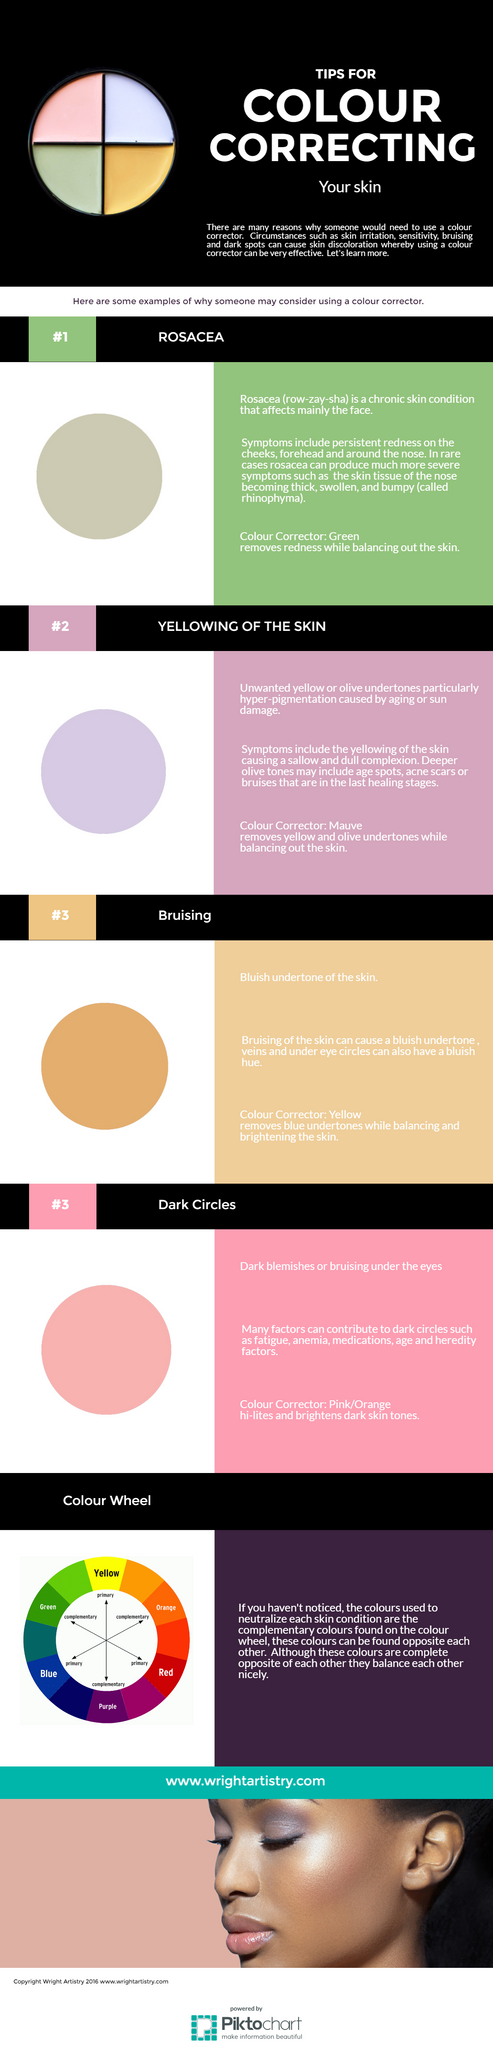 Wright Artistry Colour Correcting